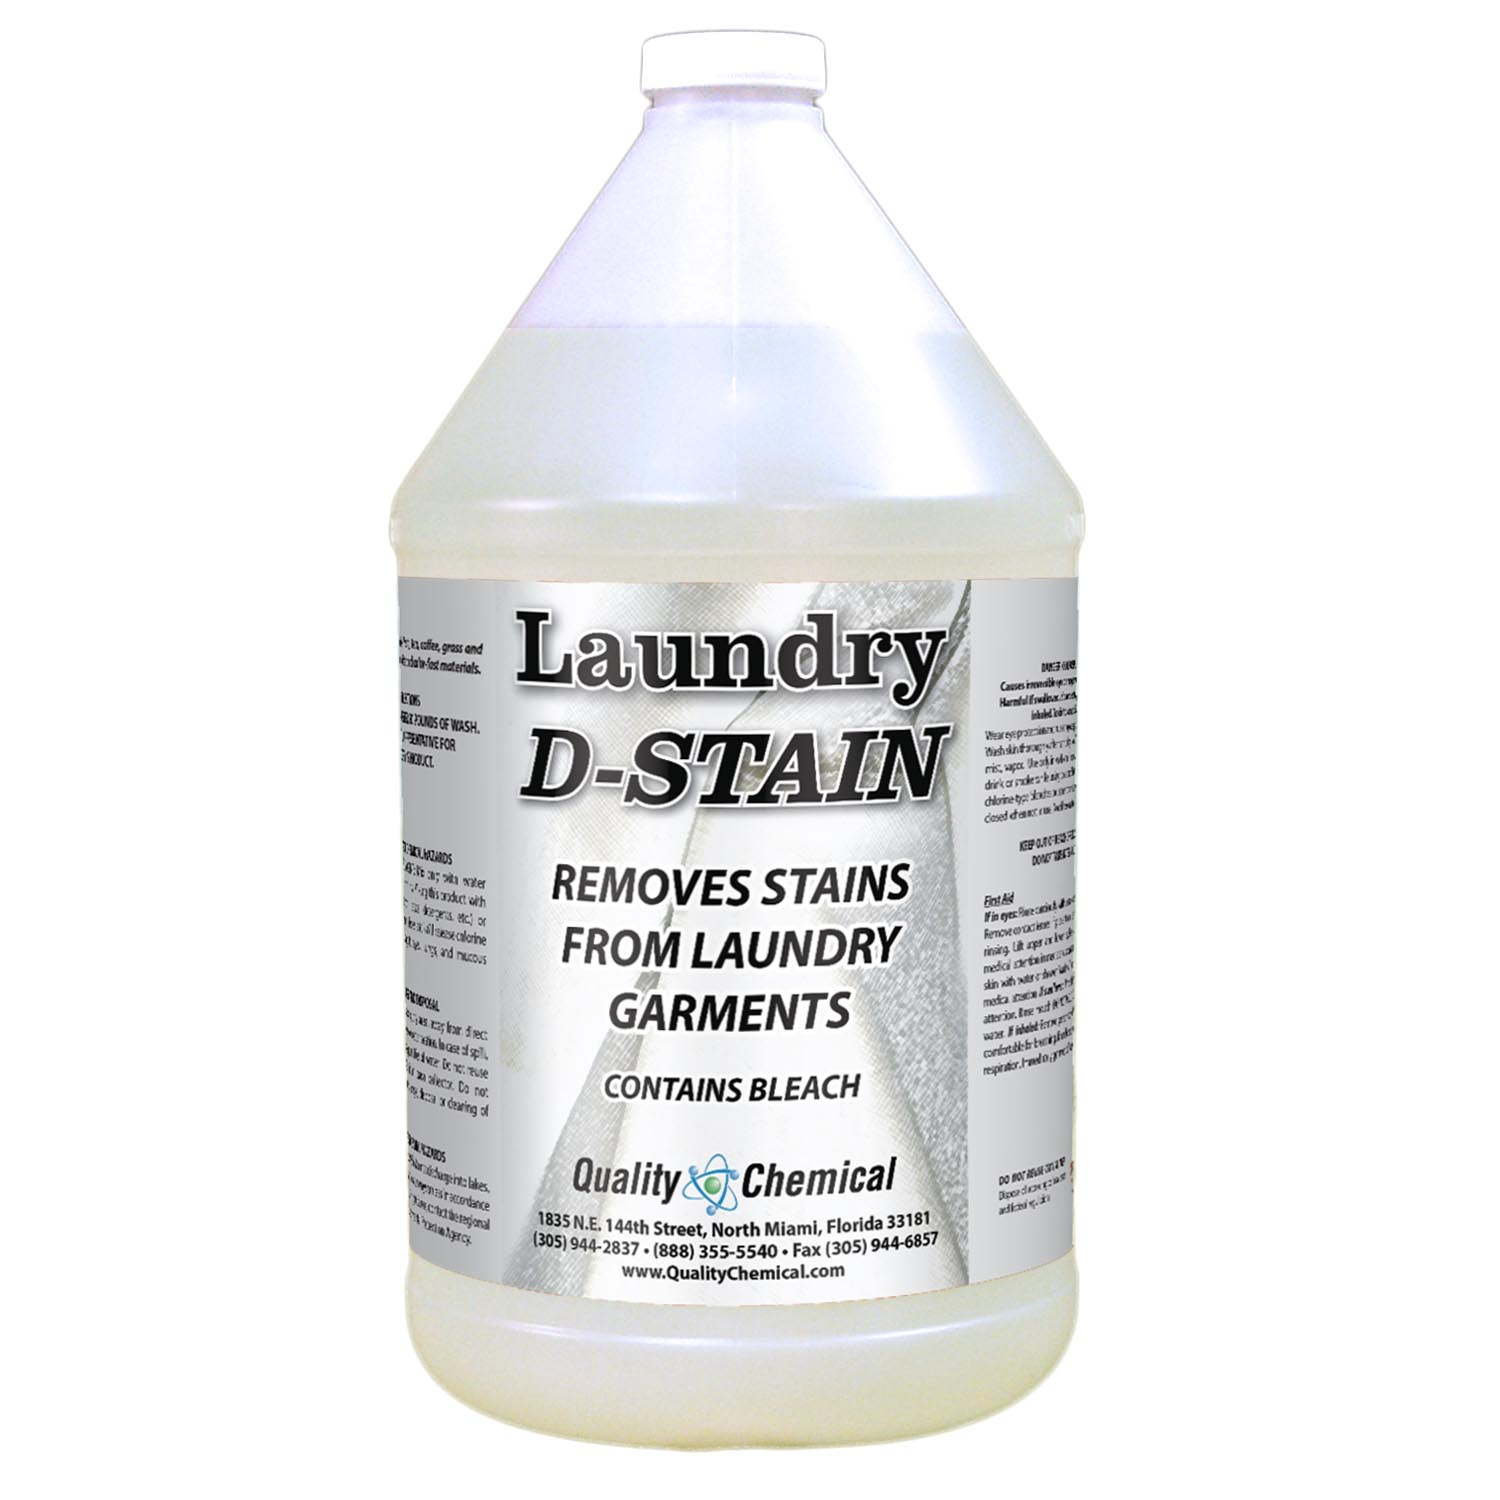 Laundry D-Stain